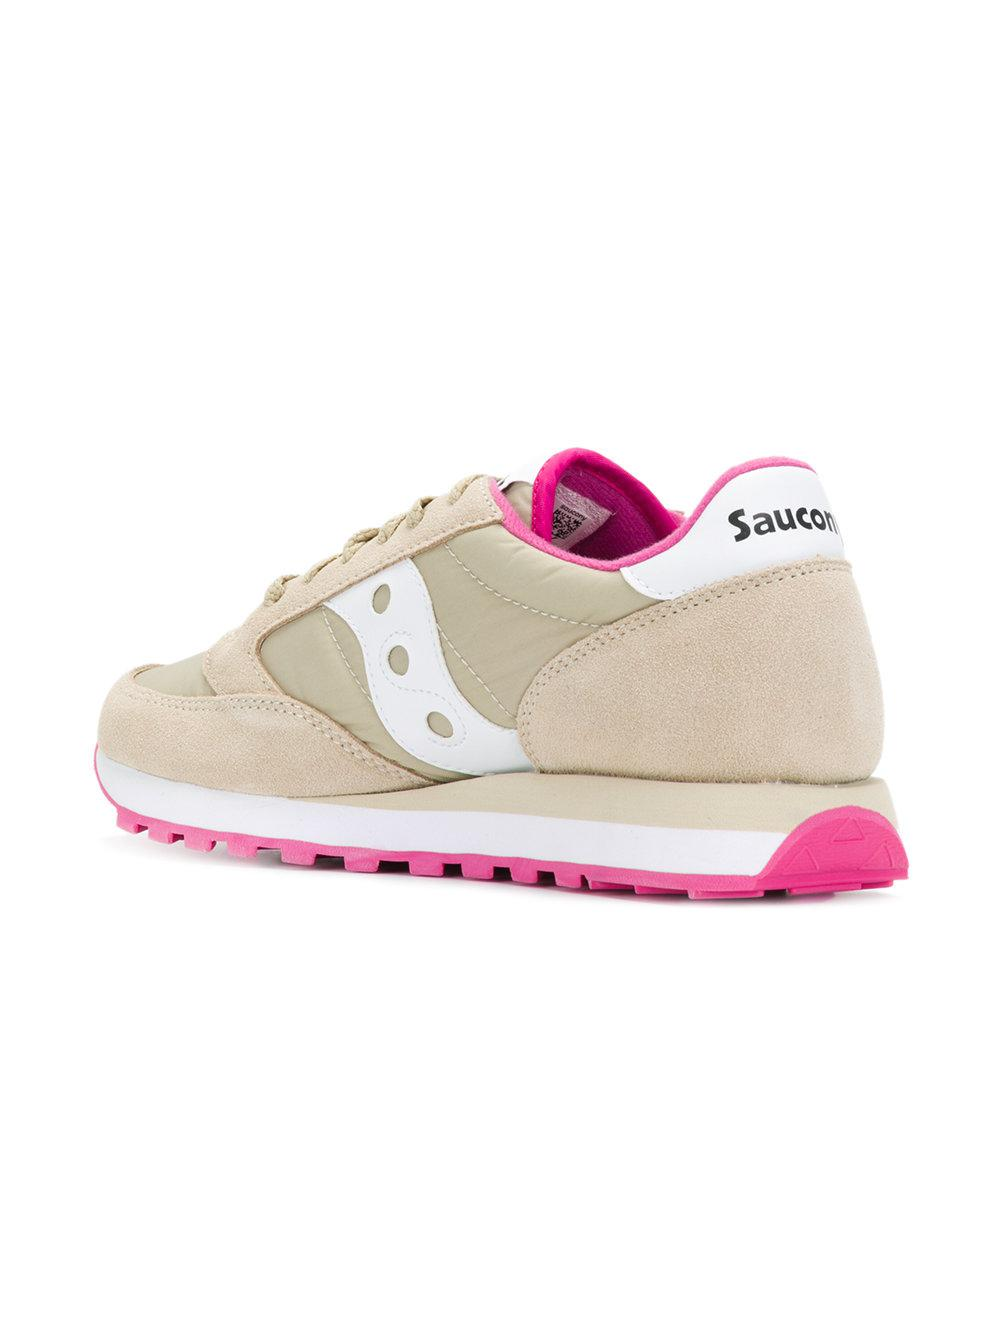 Saucony Suede Lace-up Sneakers